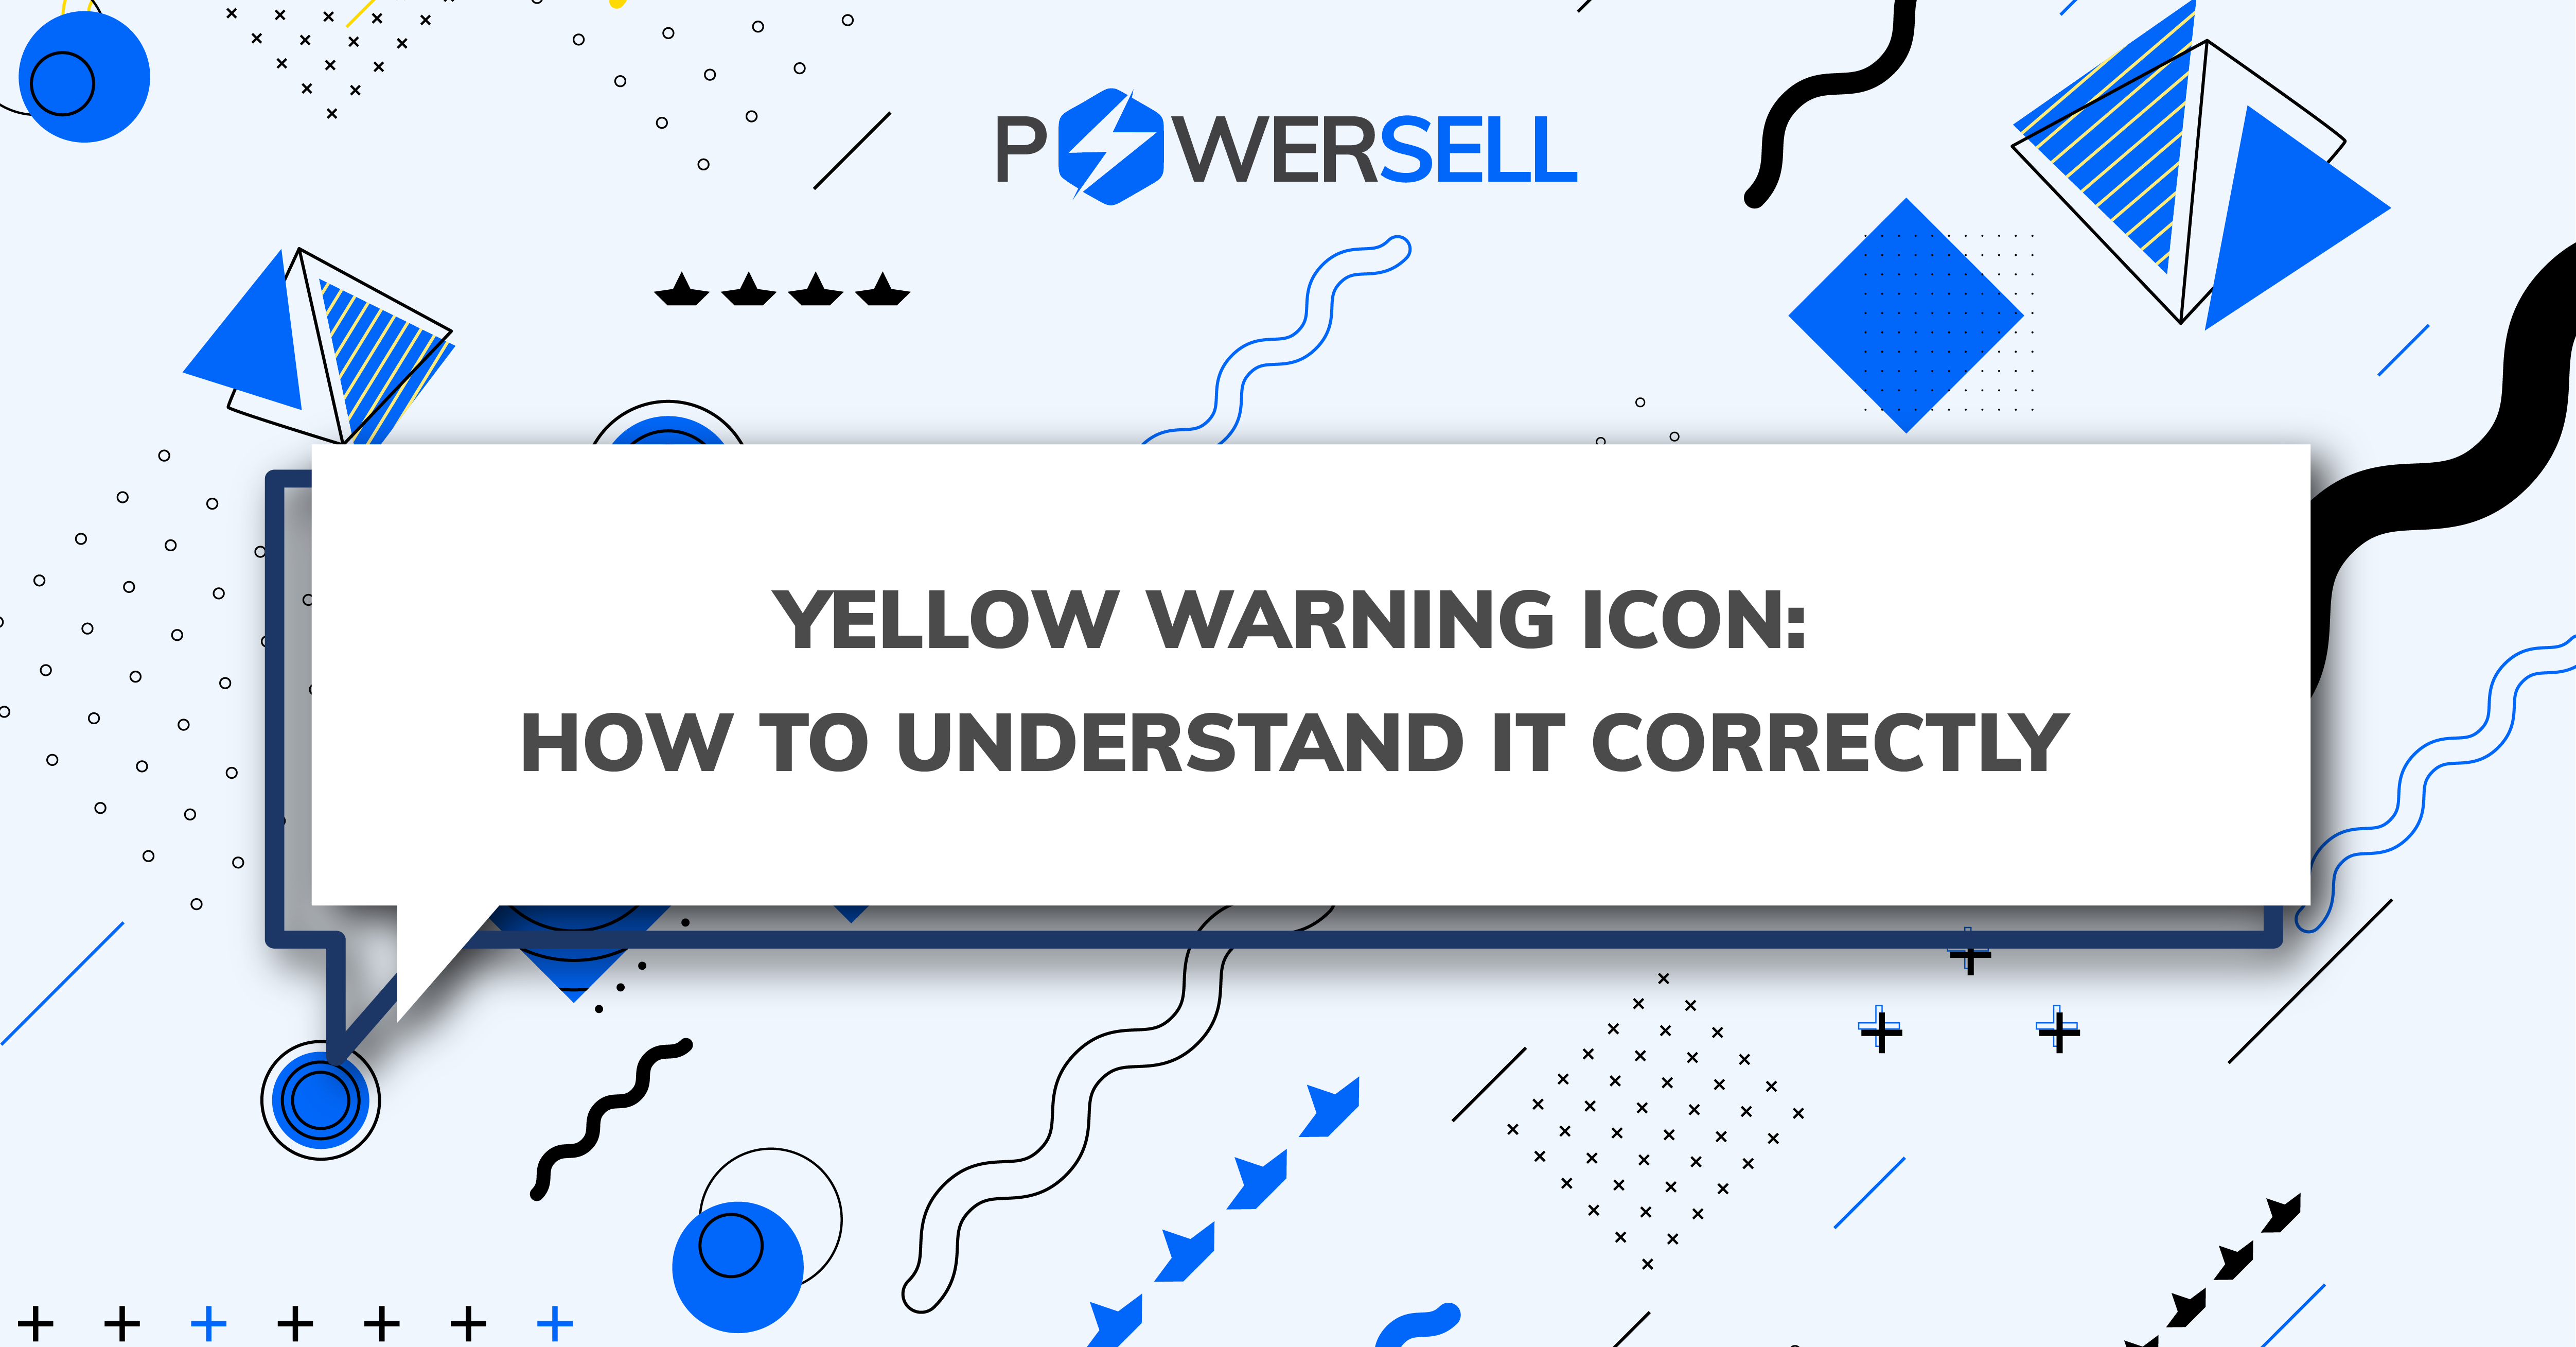 Yellow Warning Icon: How to understand it correctly